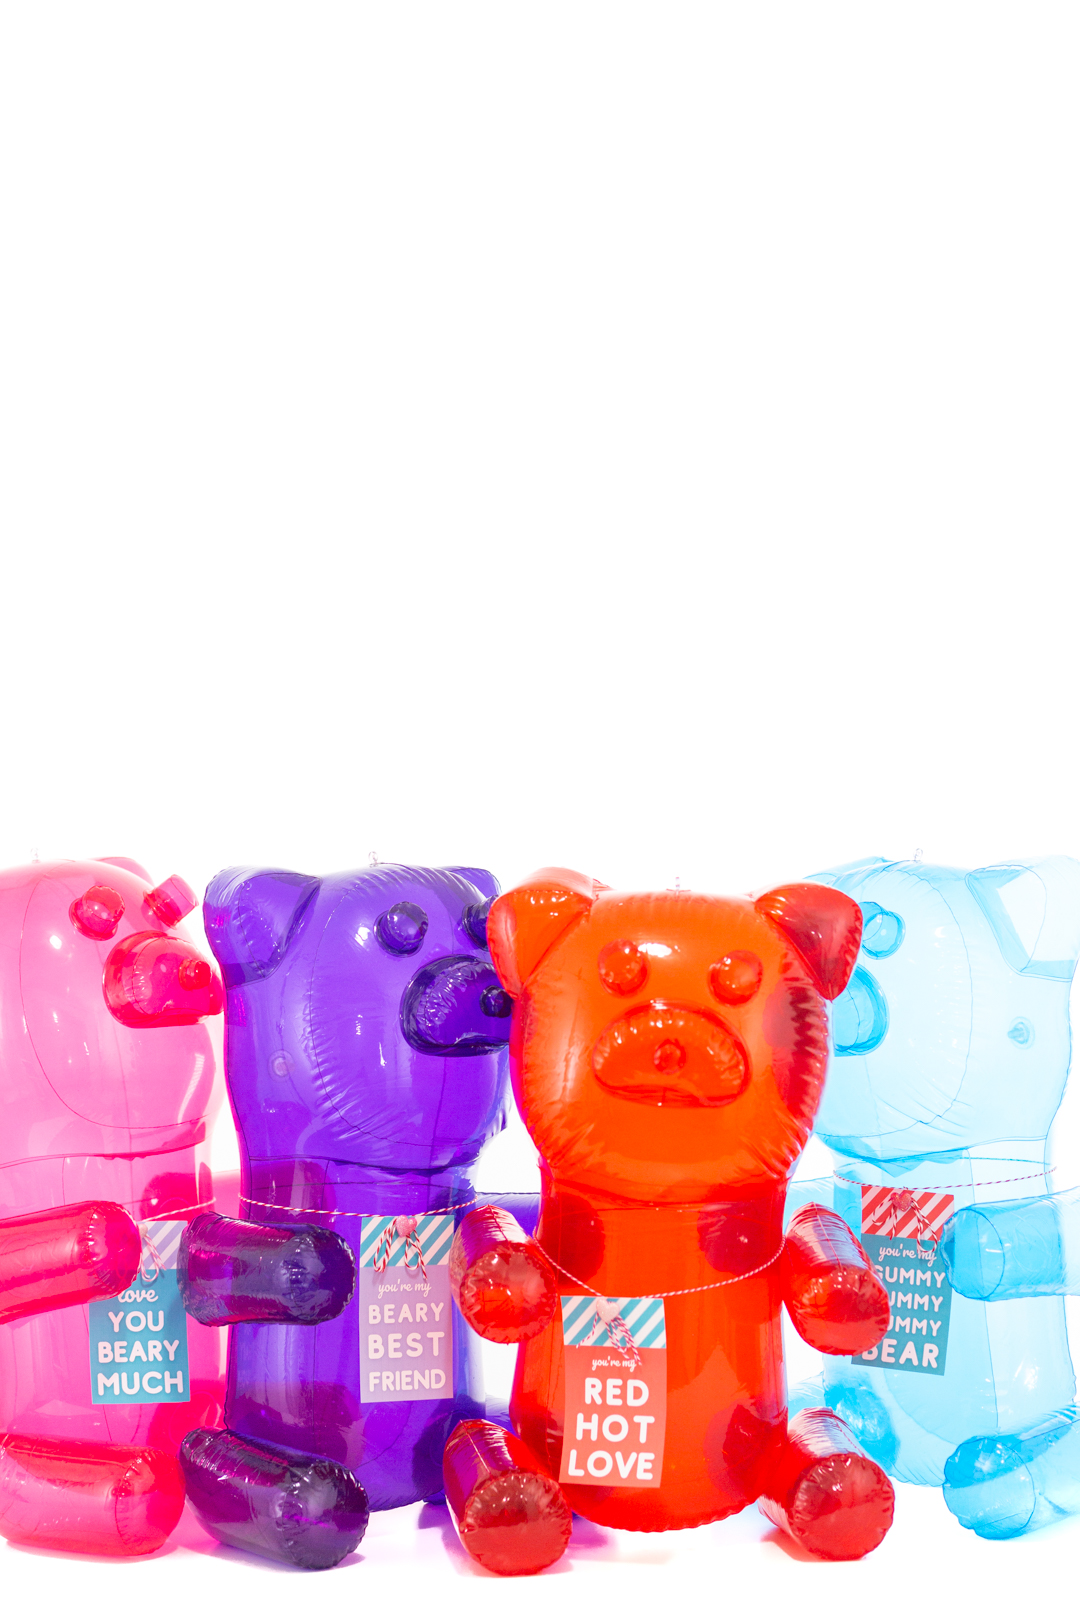 giant inflatable gummy bears for valentine's day